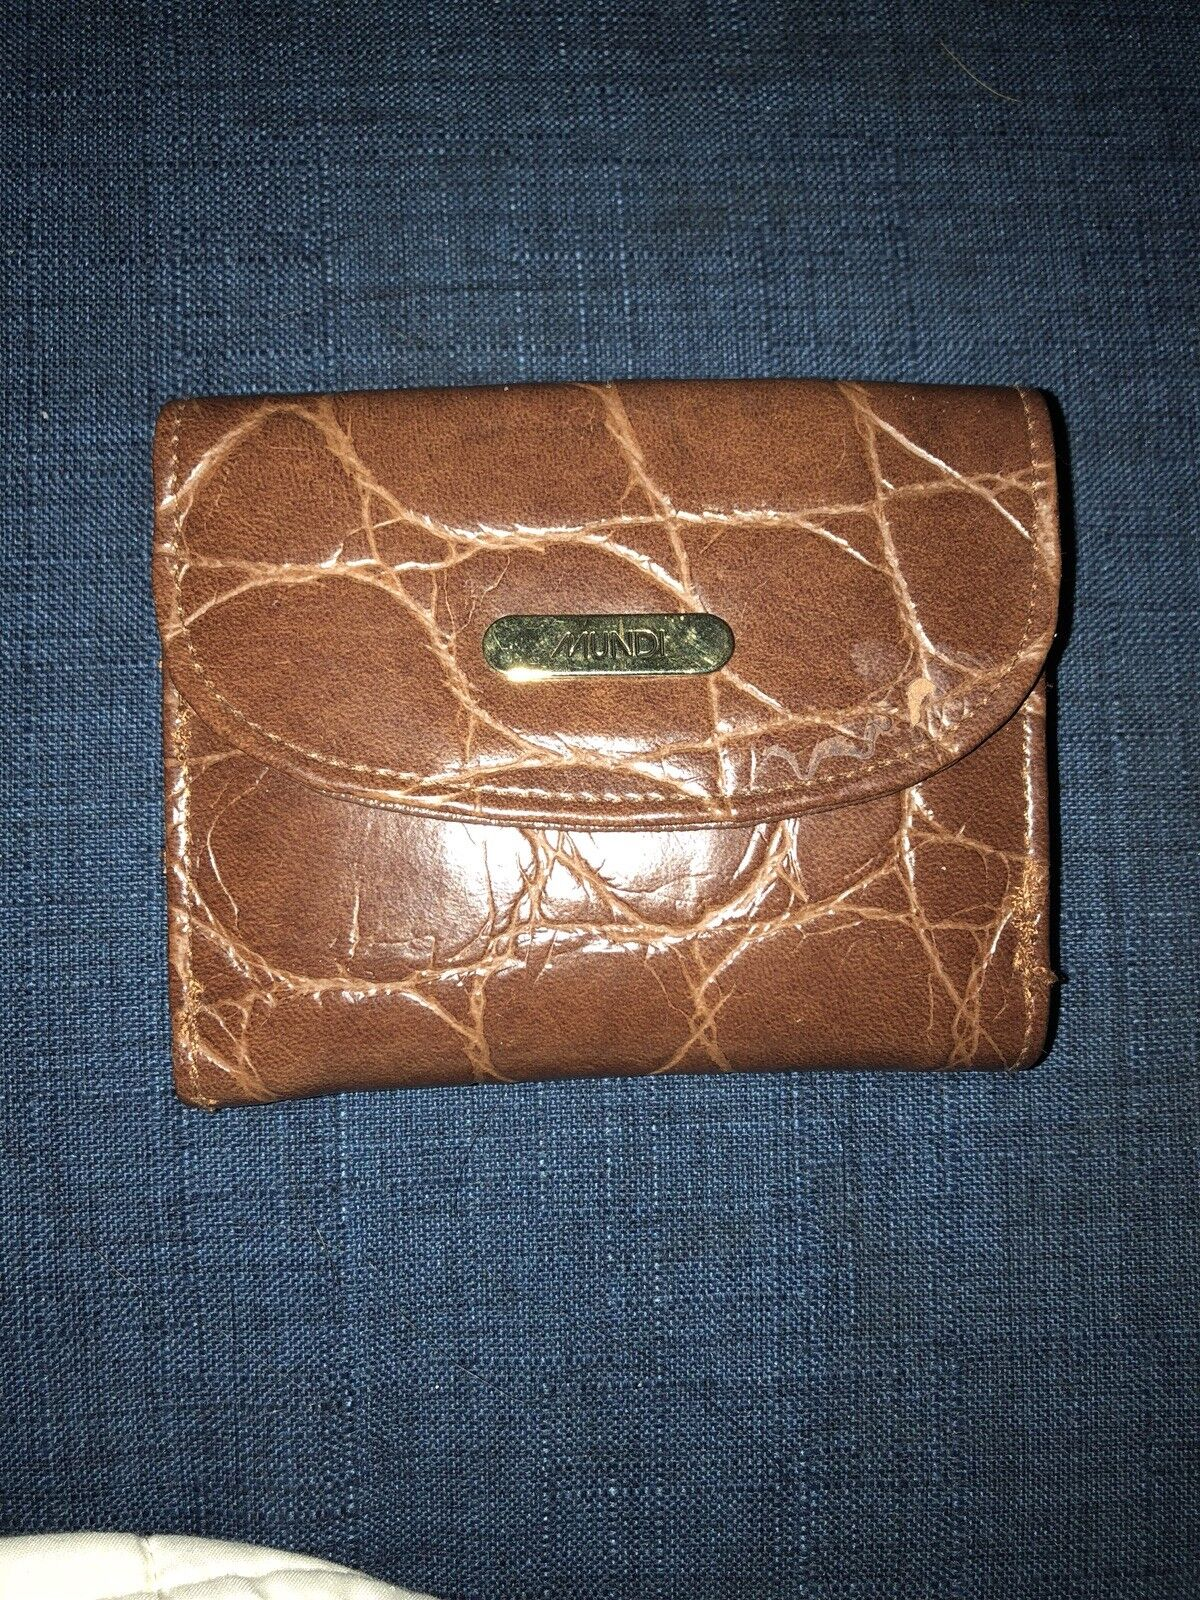 MUNDI Brown Wallet faux leather crocodile new without tags nwob